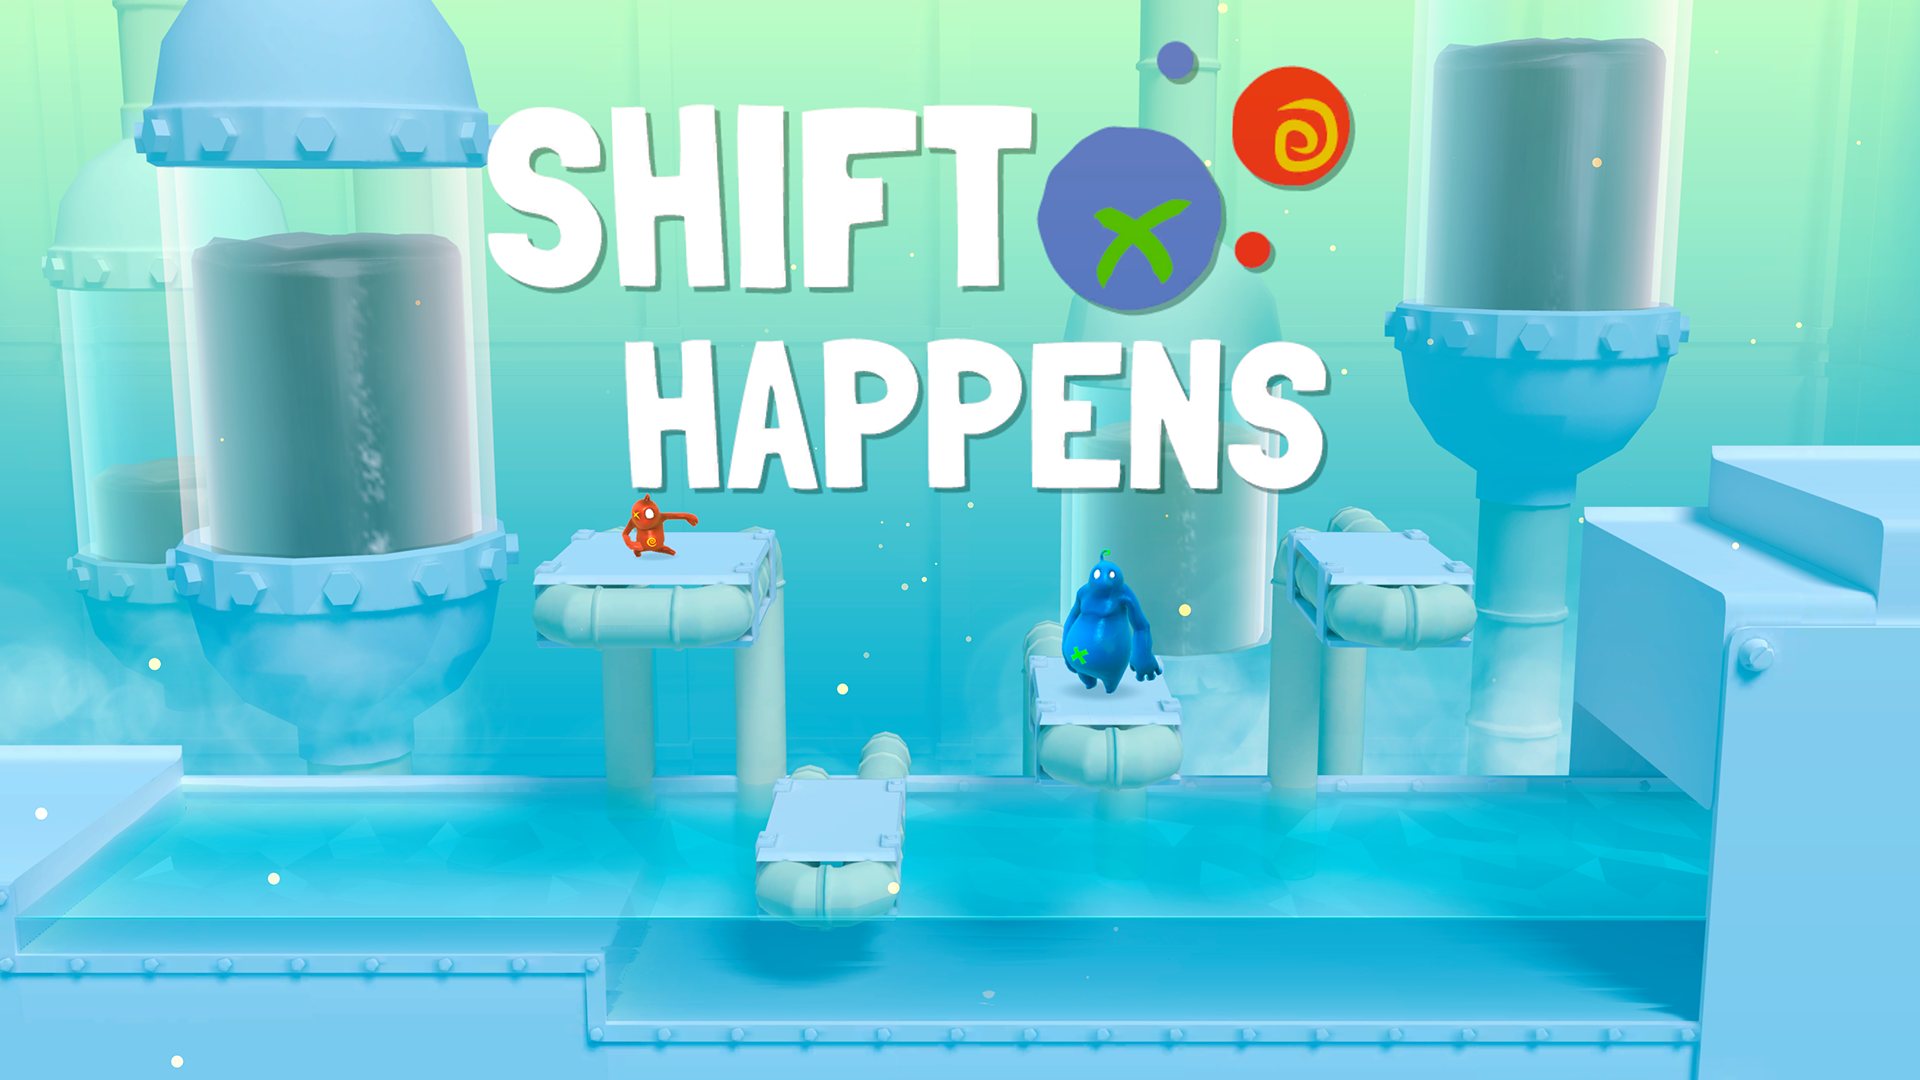 10_shift_happens_lab_1080p.png